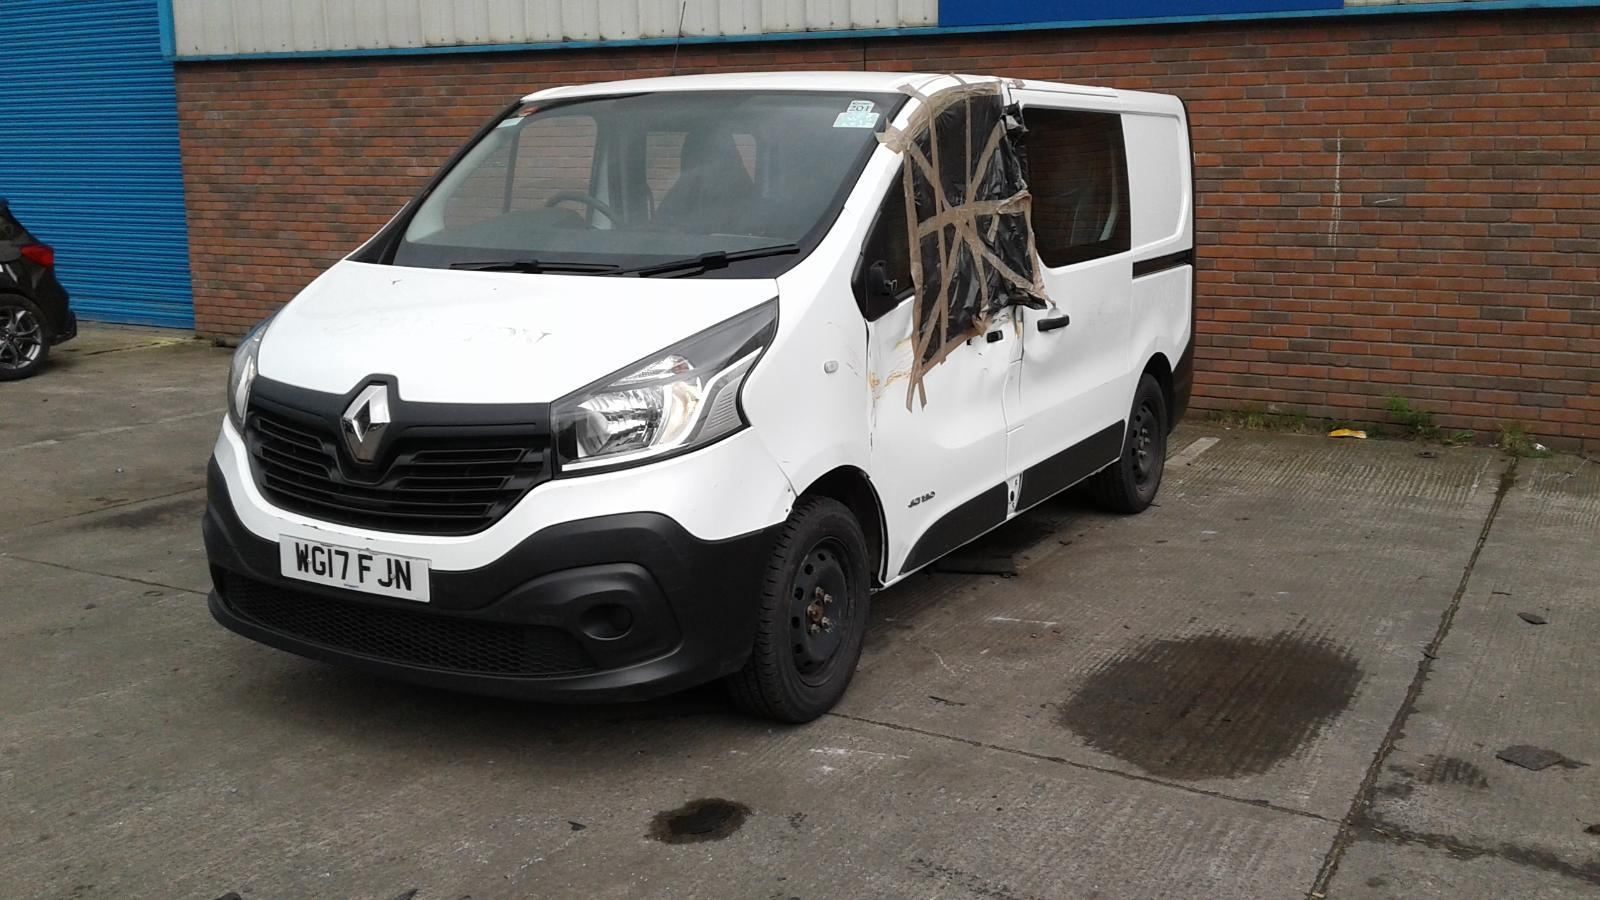 2017 RENAULT TRAFIC CREW CAB FOR SALE £8000 ONO Image